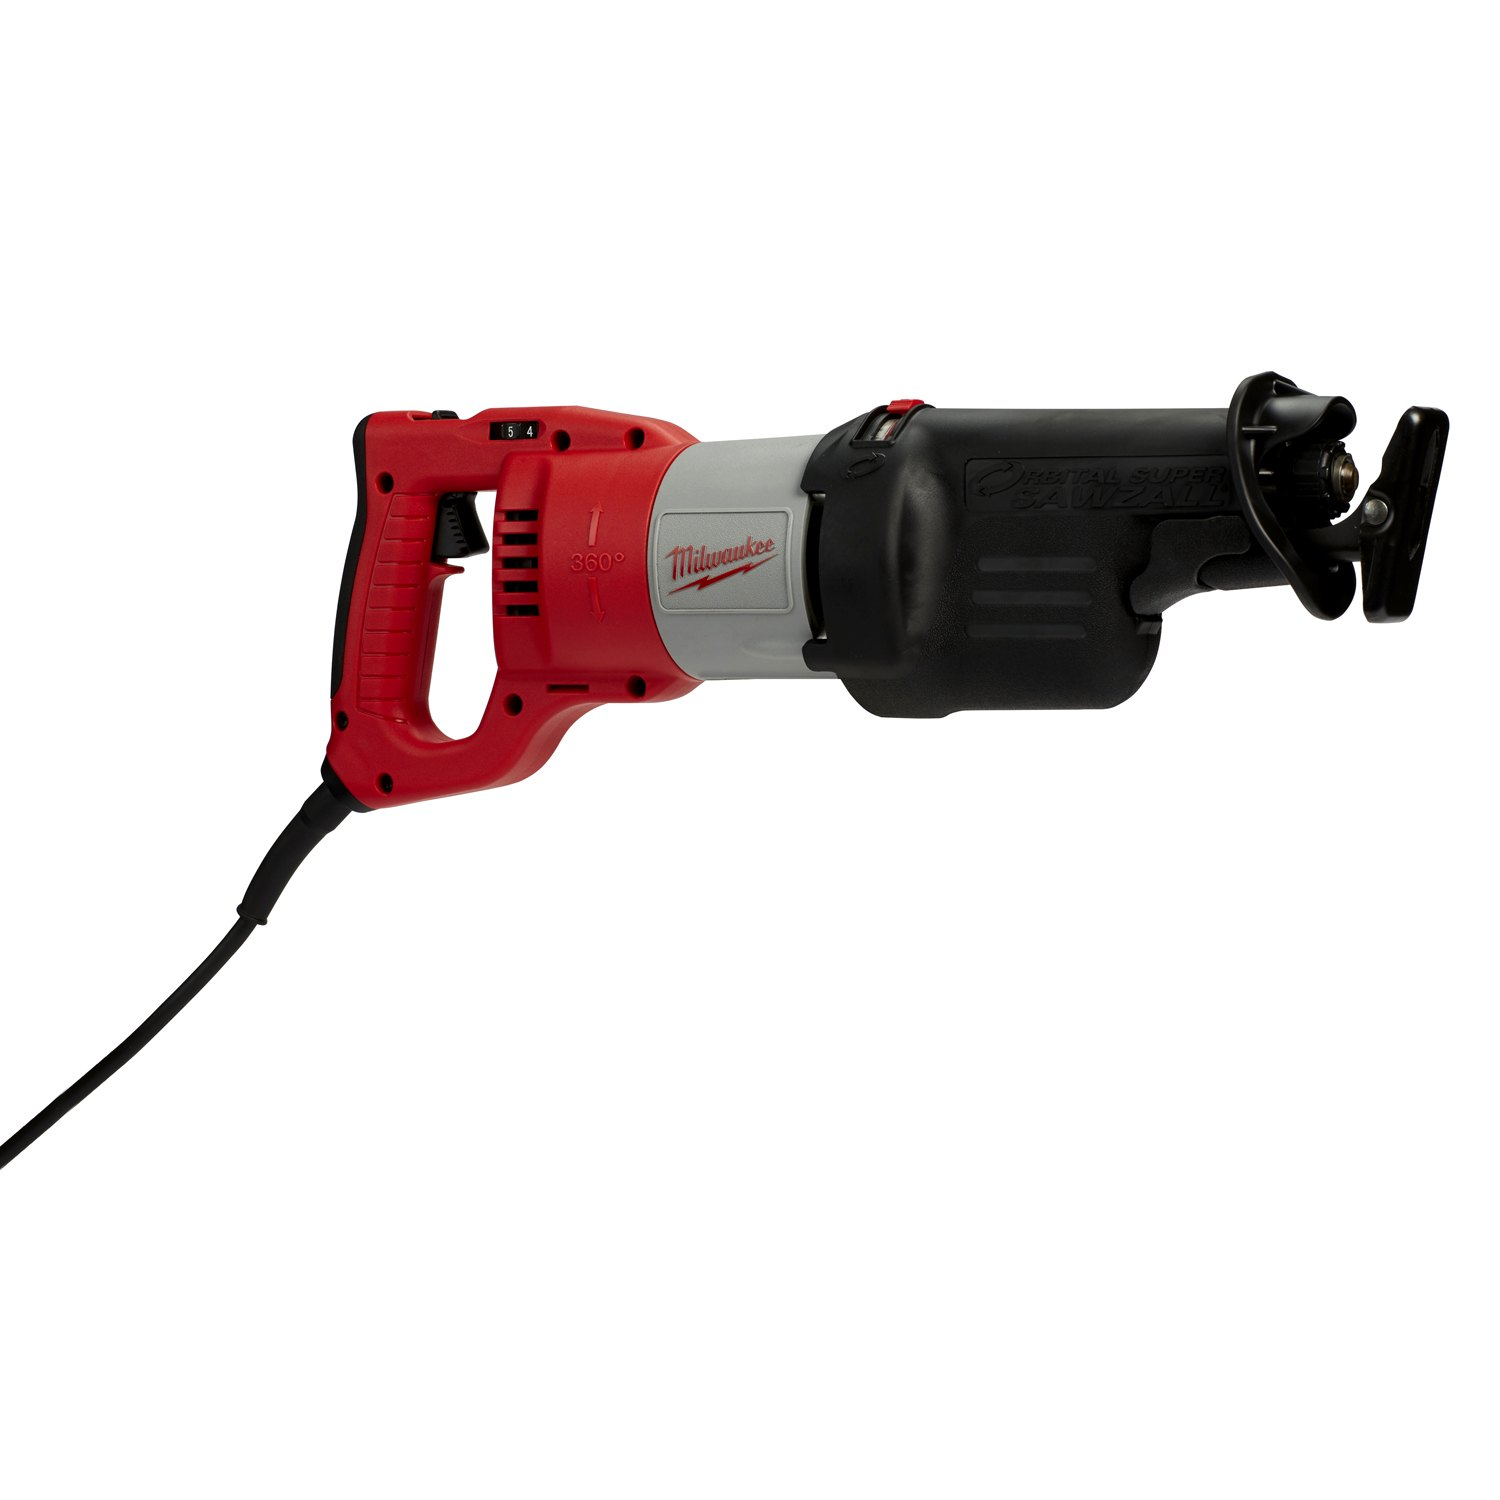 hight resolution of milwaukee 360 rotating handle orbital super sawzall recip saw